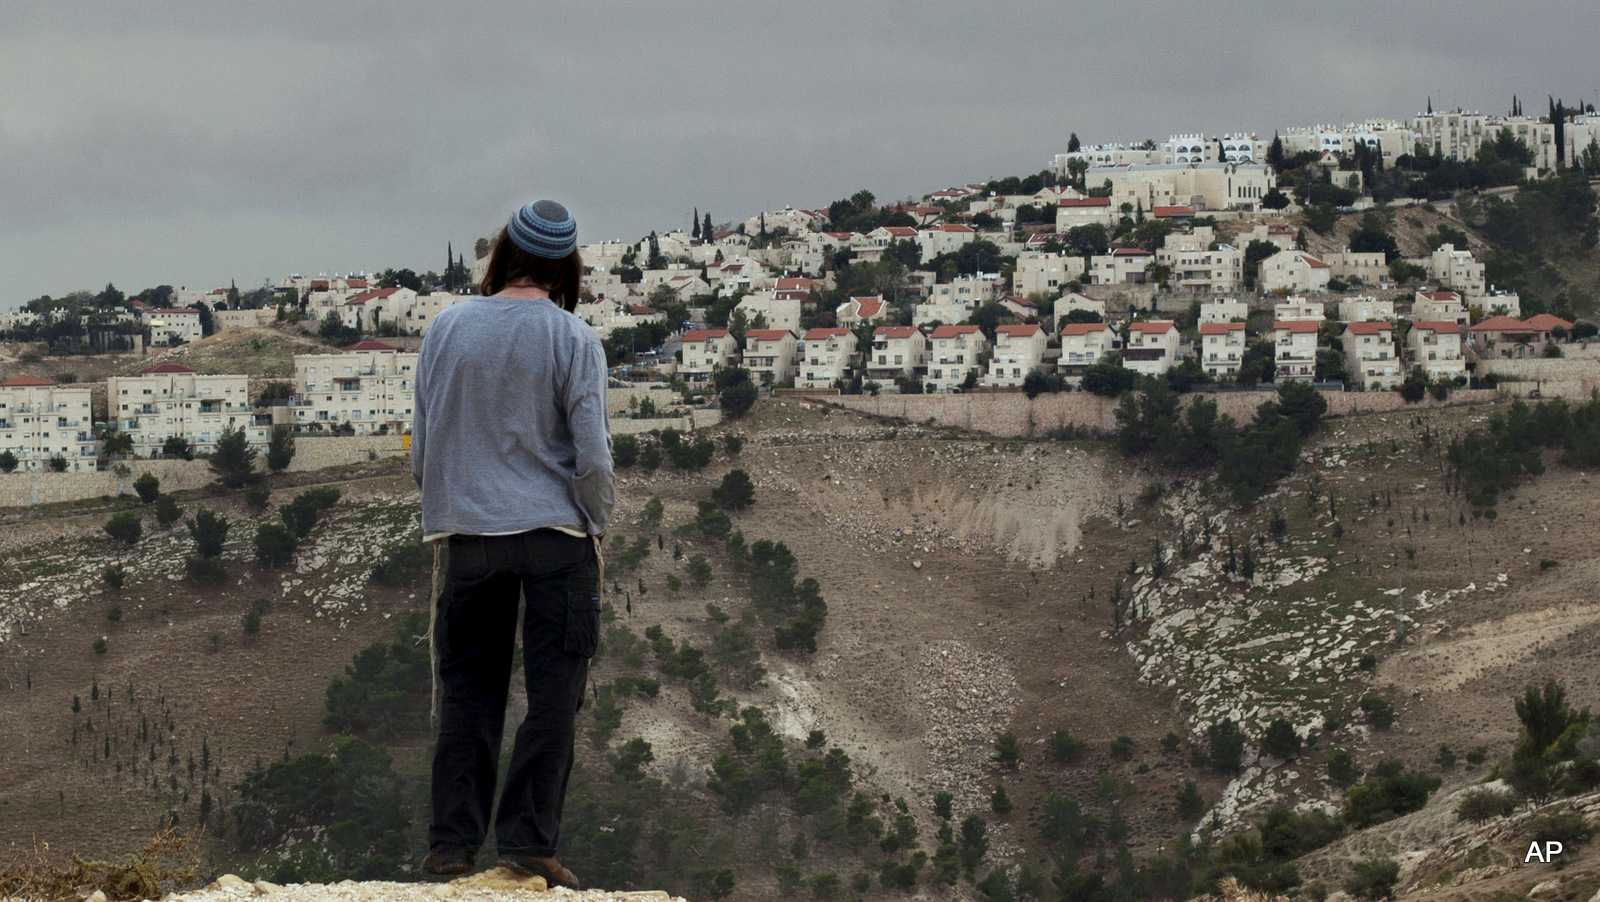 A Jewish settler looks at the West bank settlement of Maaleh Adumim, from the E-1 area on the eastern outskirts of Jerusalem.